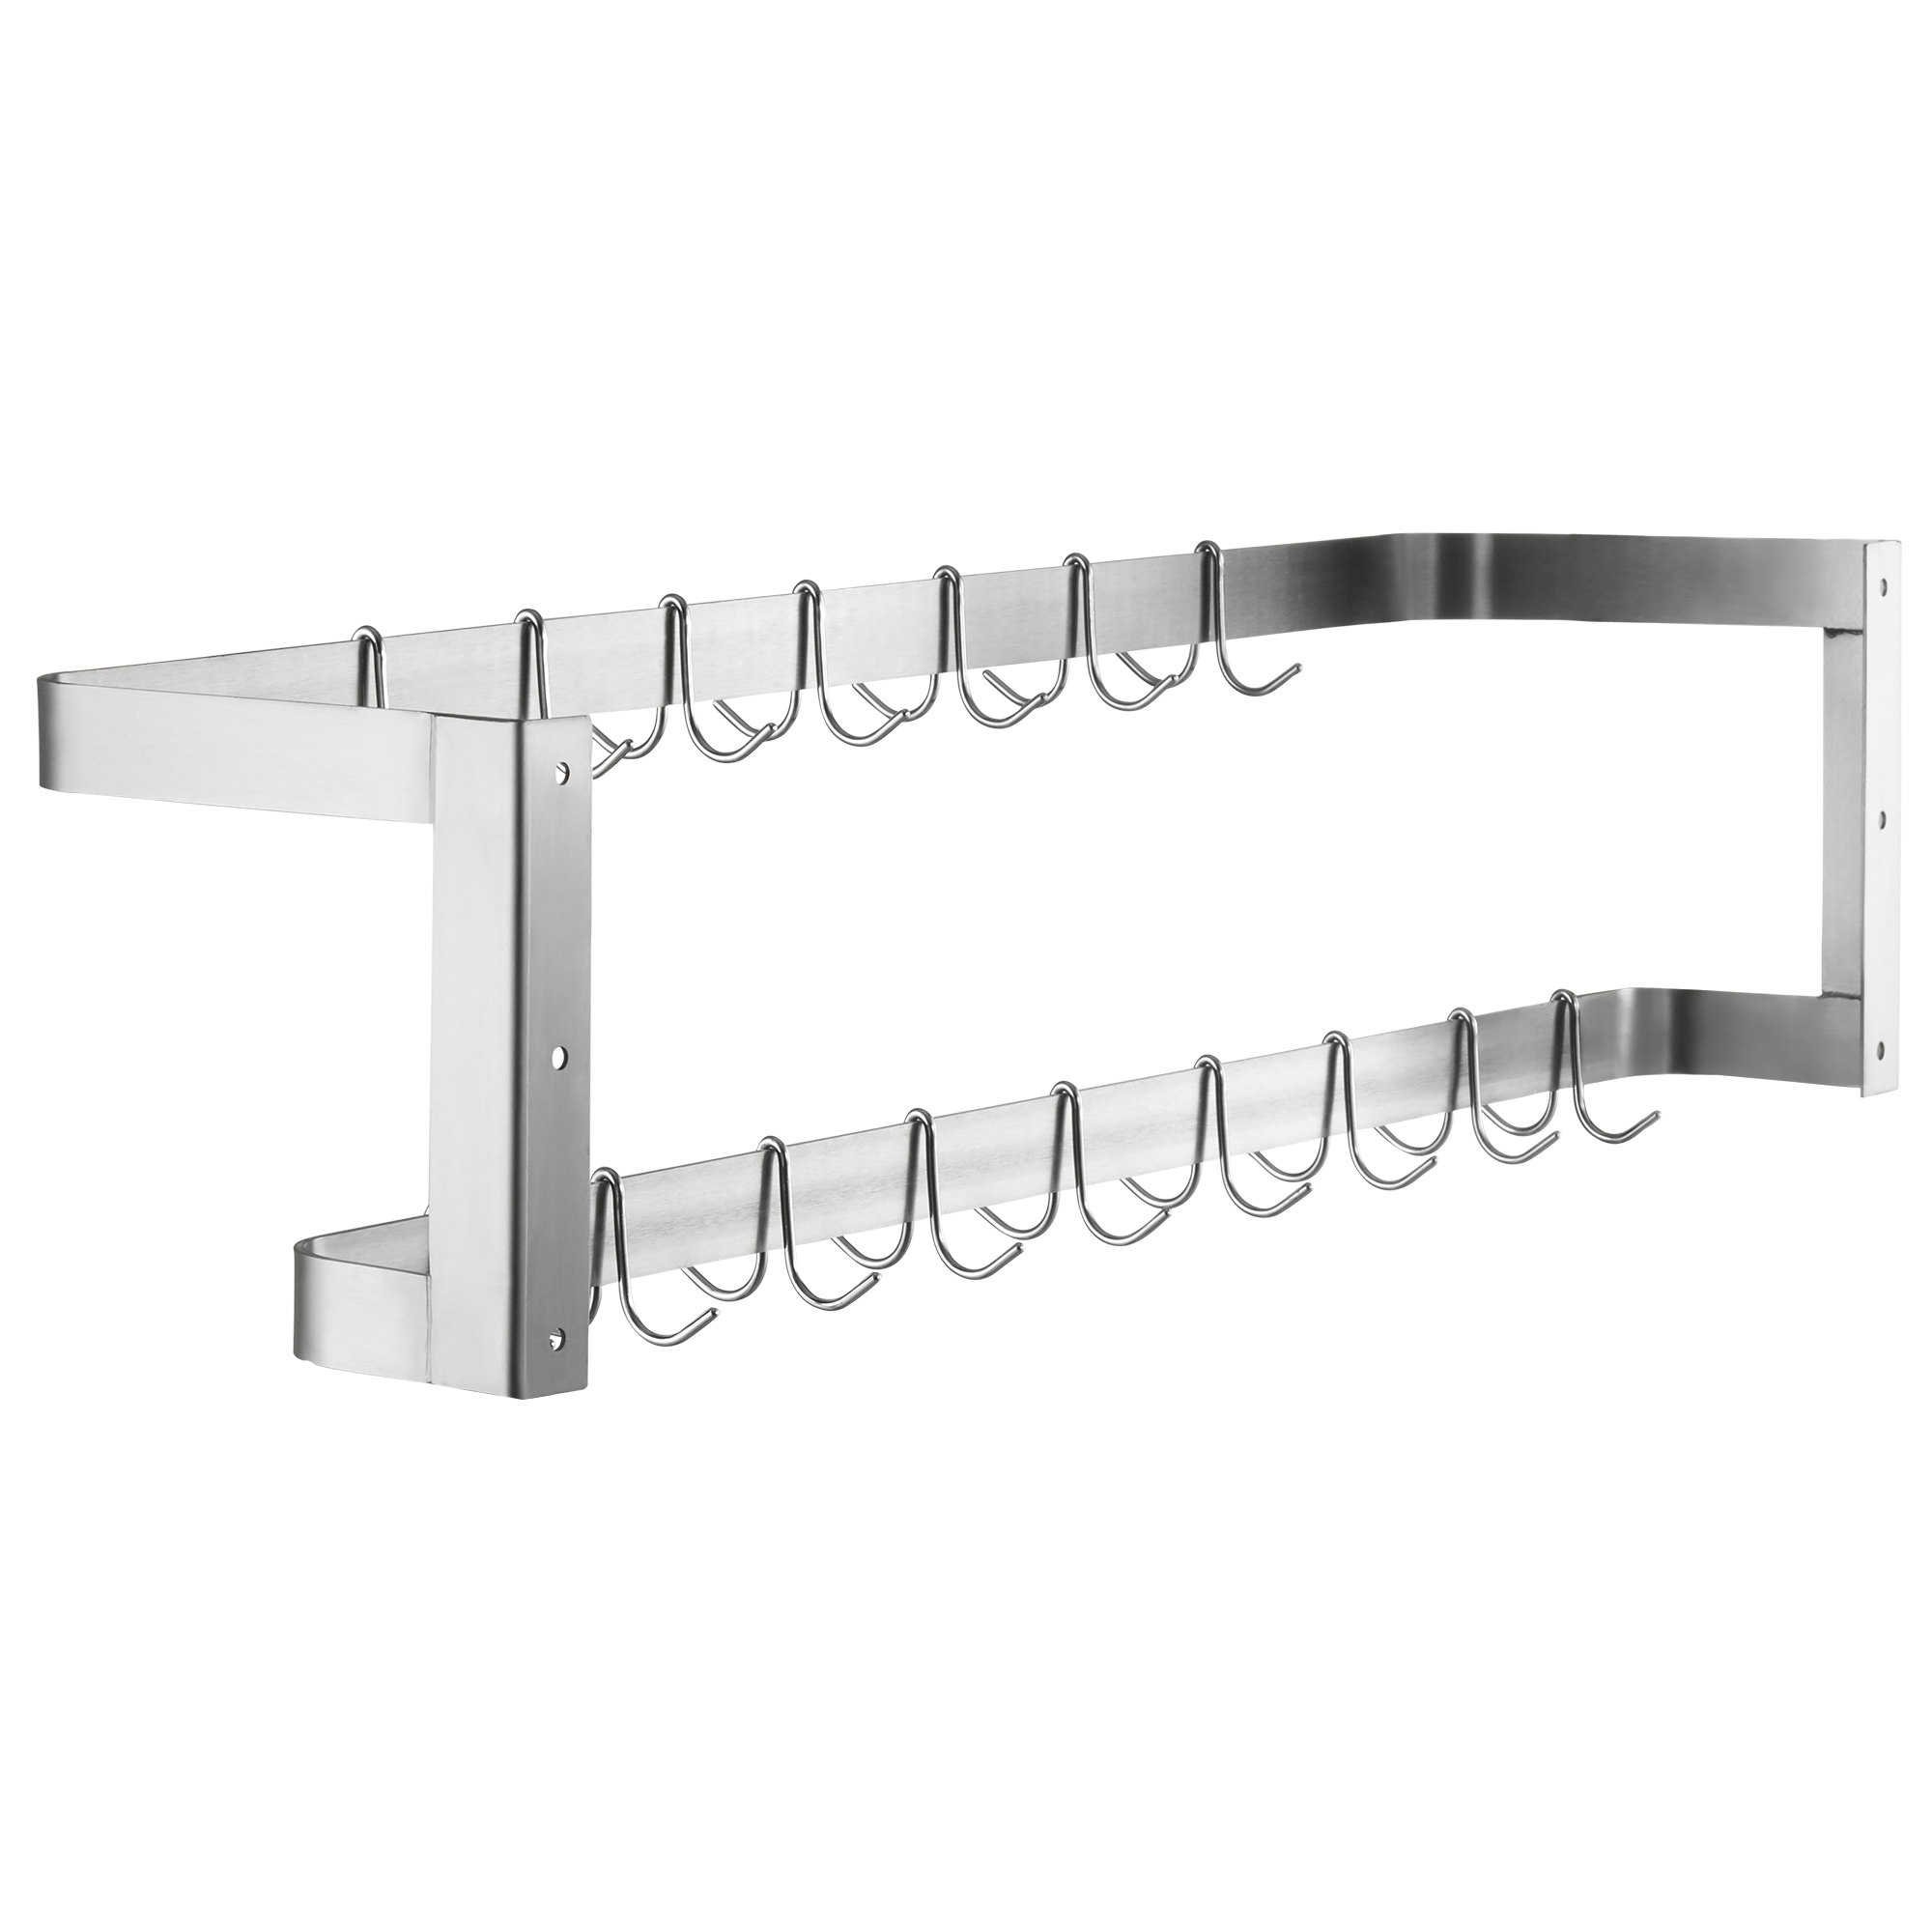 "Hakka 48"" Wall Mounted Commercial Stainless Steel Double Line Pot Rack"